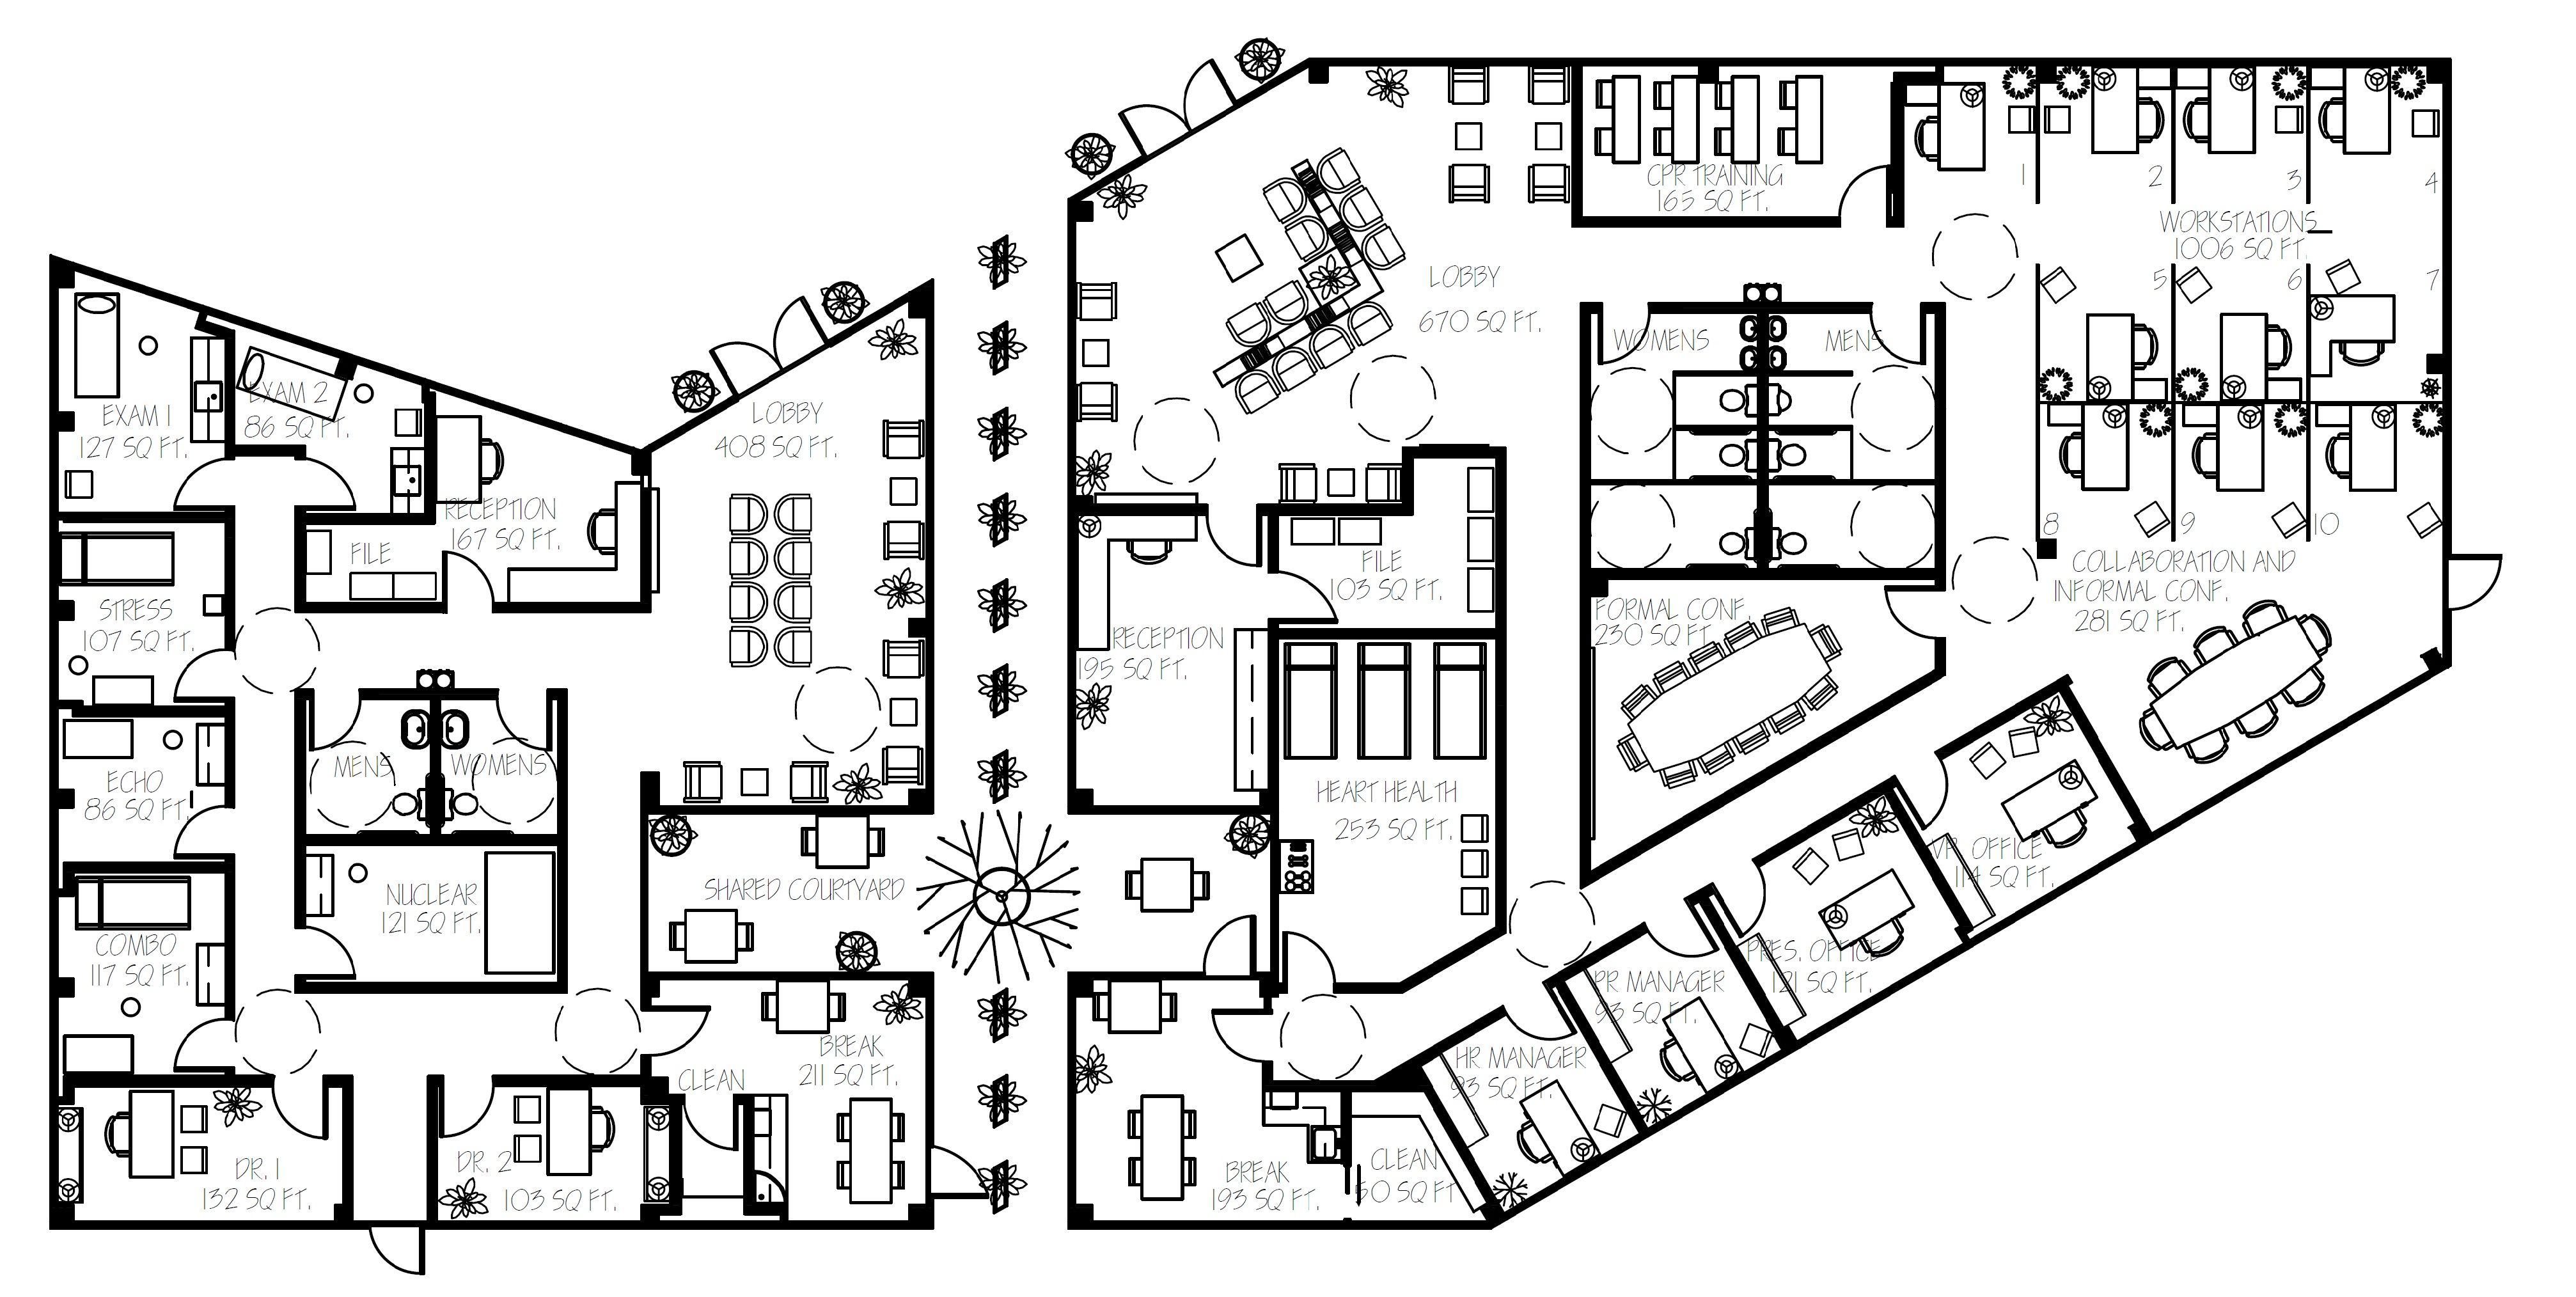 Silo house plans google search home floorplans for Searchable house plans